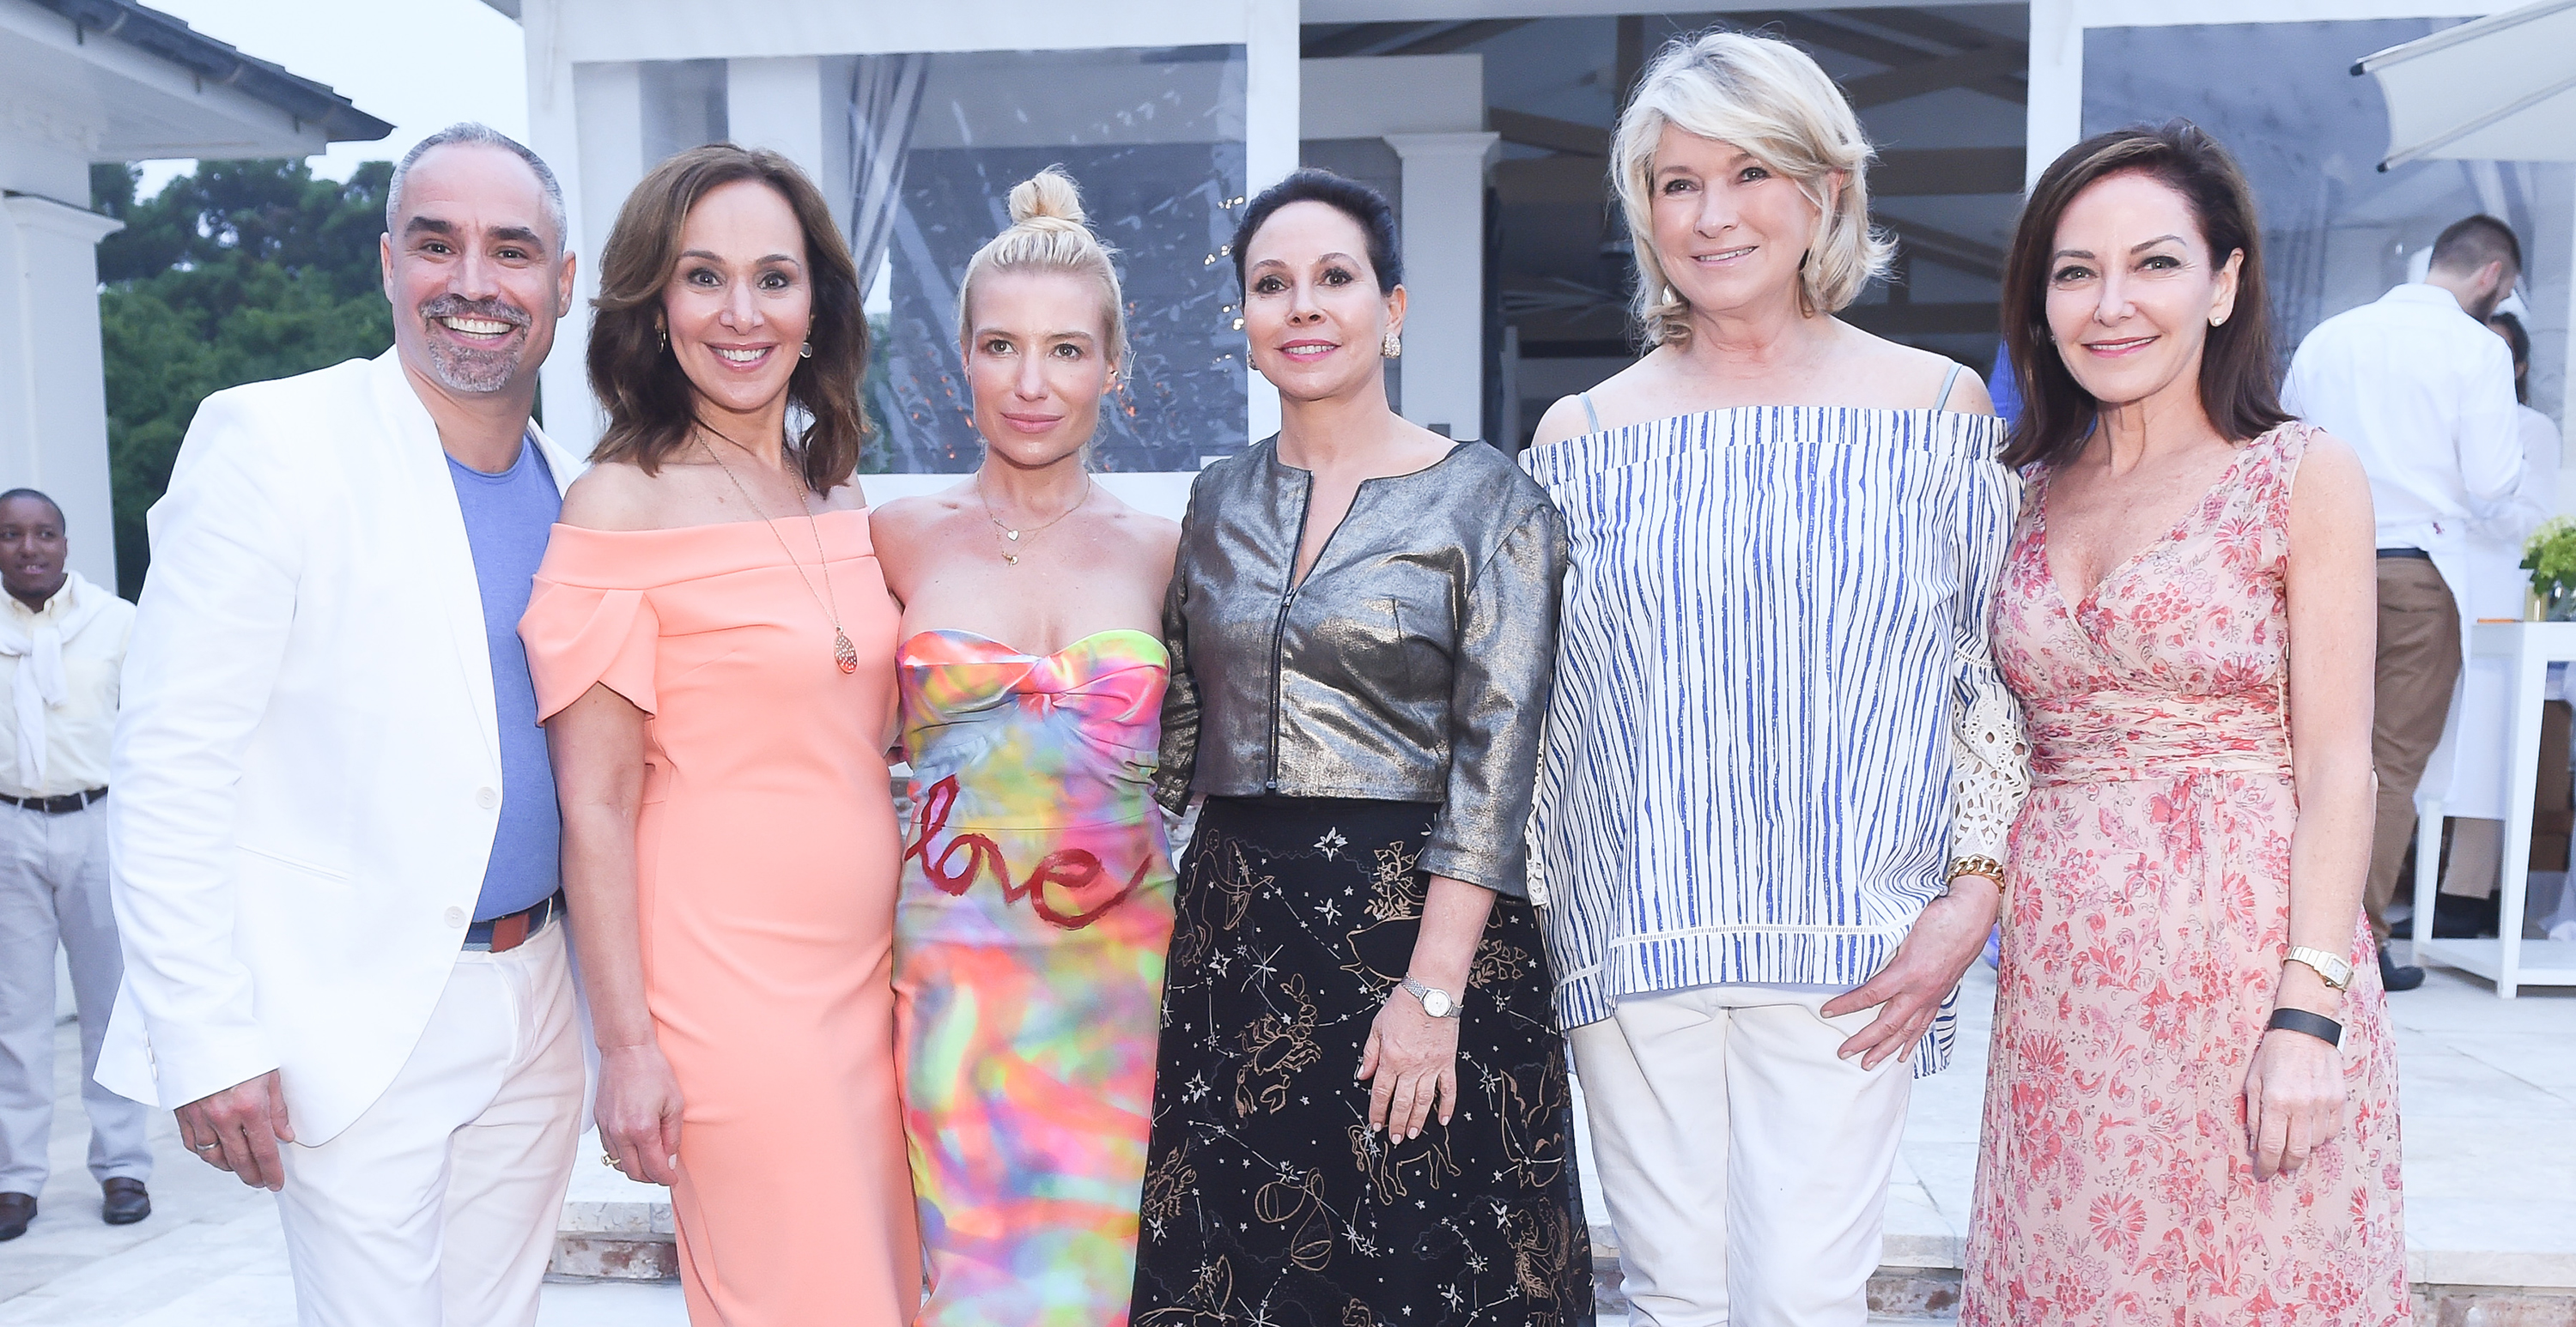 Hetrick-Martin Institute's Annual Hamptons Benefit - Galerie